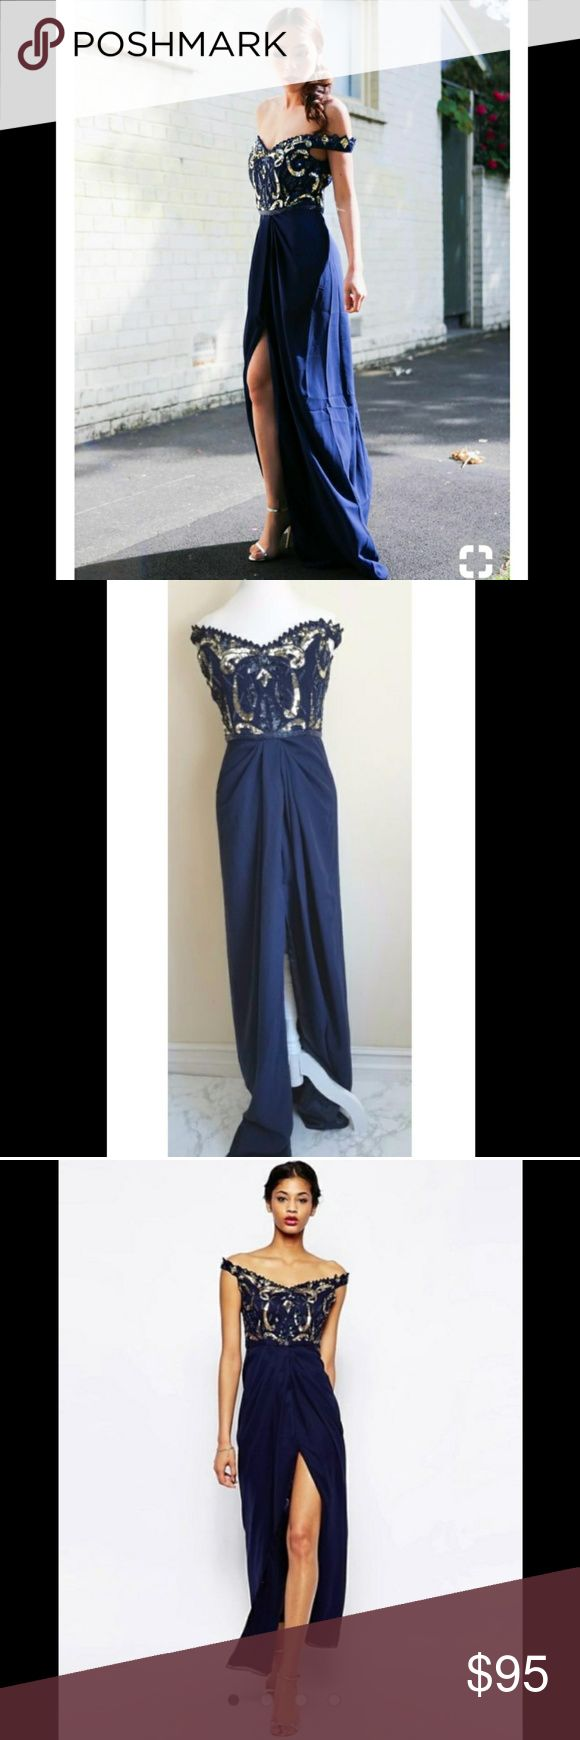 Sequin Beaded Off Shoulder High Slit Navy Gown MAKE OFFERS As seen on ASOS  Size 10 fits true to size  embellished bodice  maxi dress  slit  Off shoulder  hidden sip back closure  Bardot neckline  includes extra beads  brand new with tags  Perfect for holiday, party, cocktail, or wedding.  Virgos Lounge Dresses Maxi